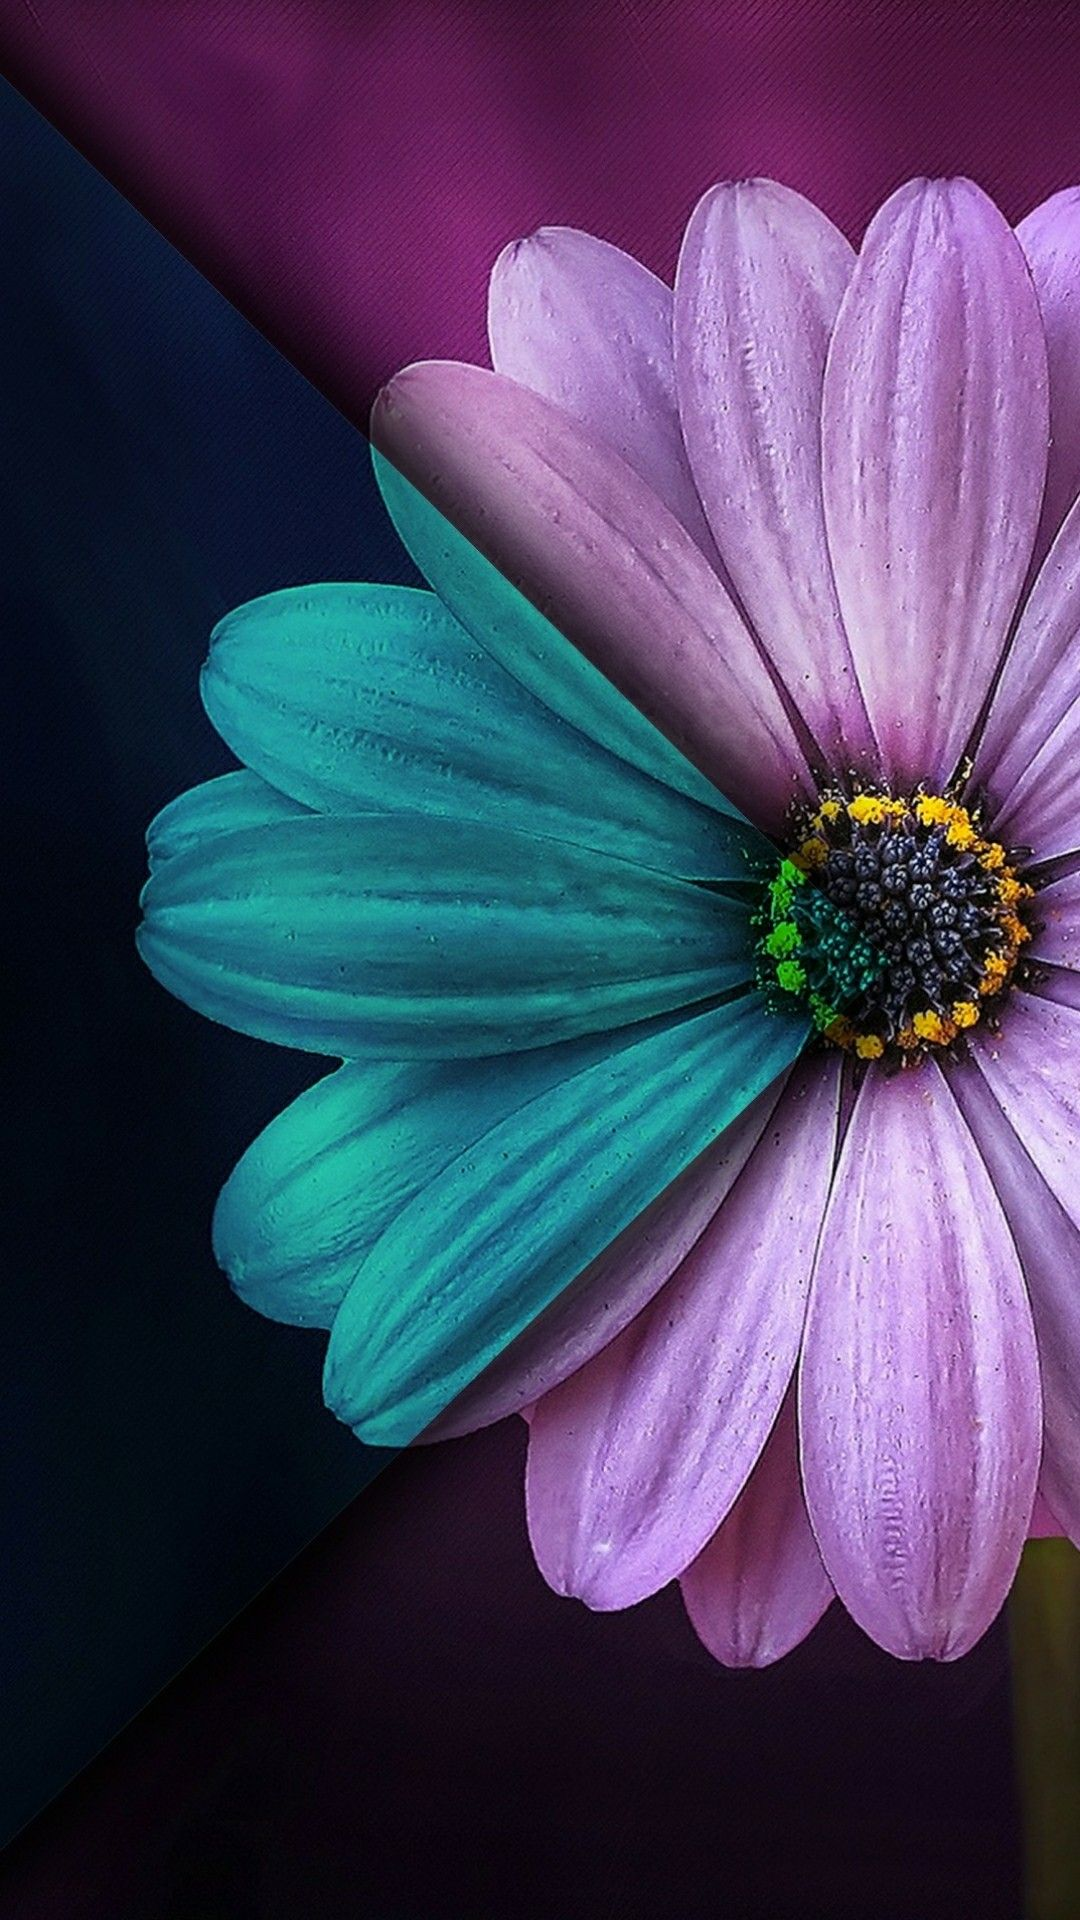 Pin by shashi singh on iPhone 6 Daisy wallpaper, Flower